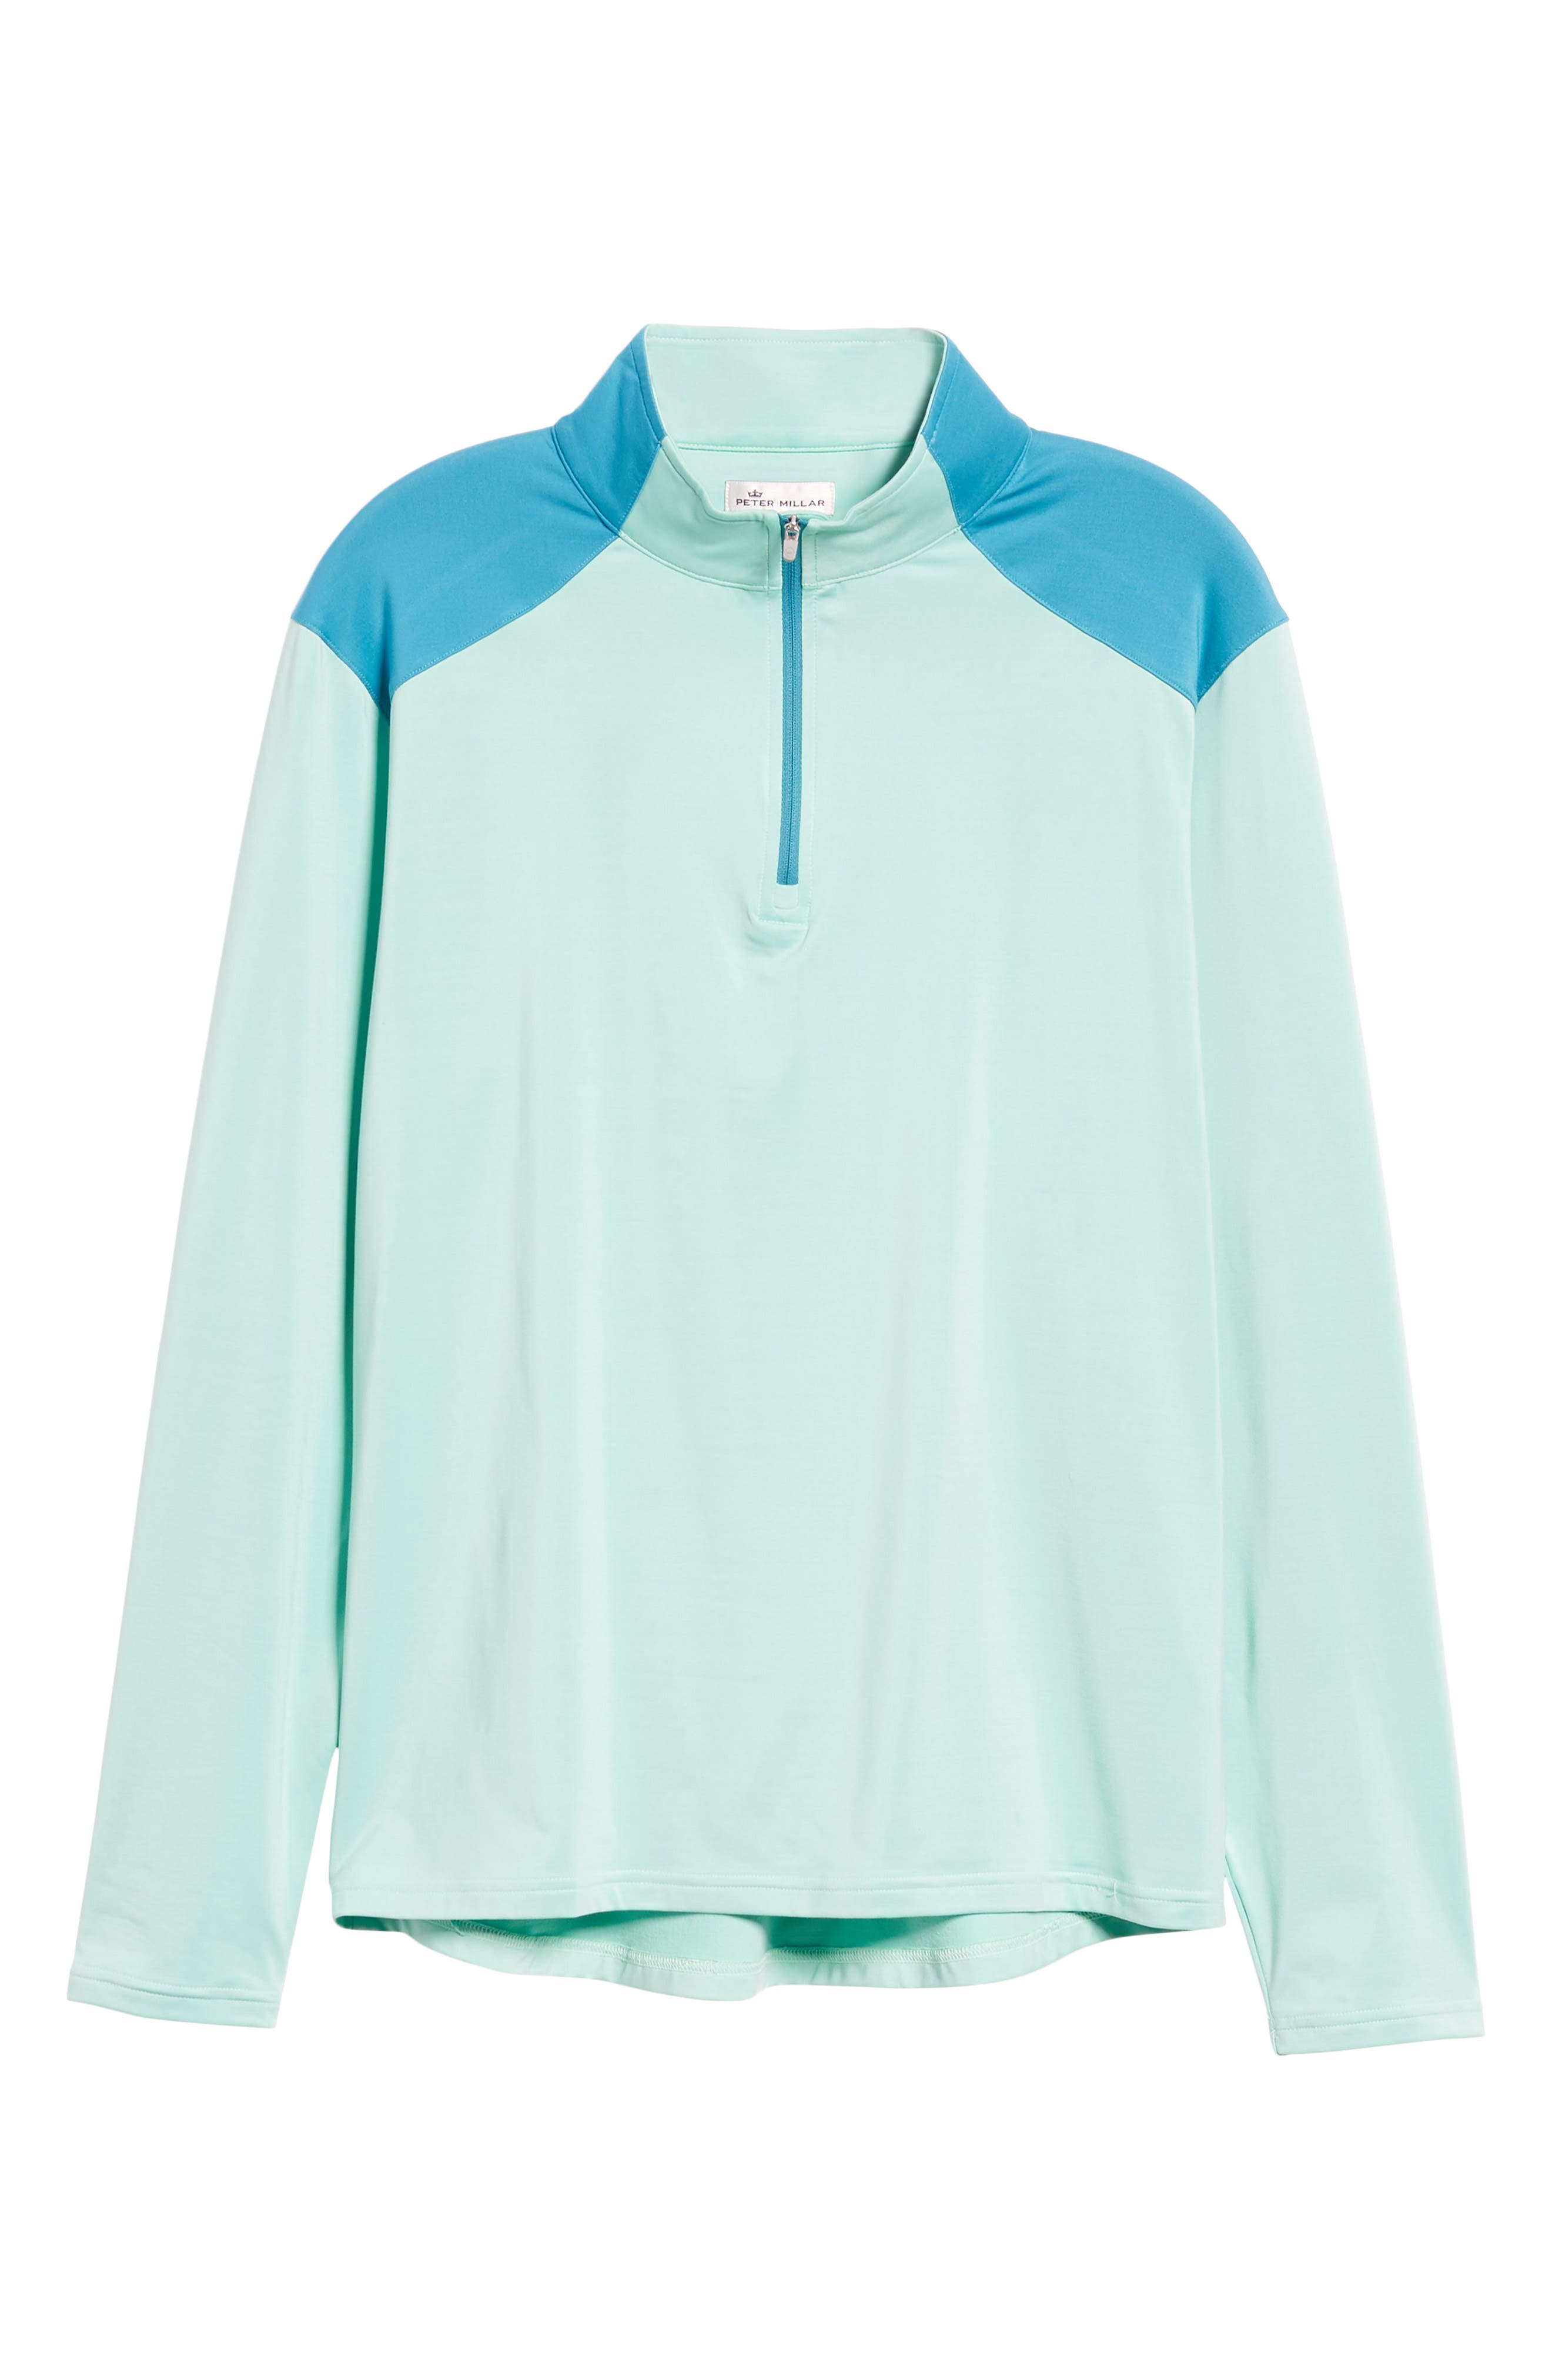 Quarter Zip Performance Pullover,                             Alternate thumbnail 6, color,                             TEAL